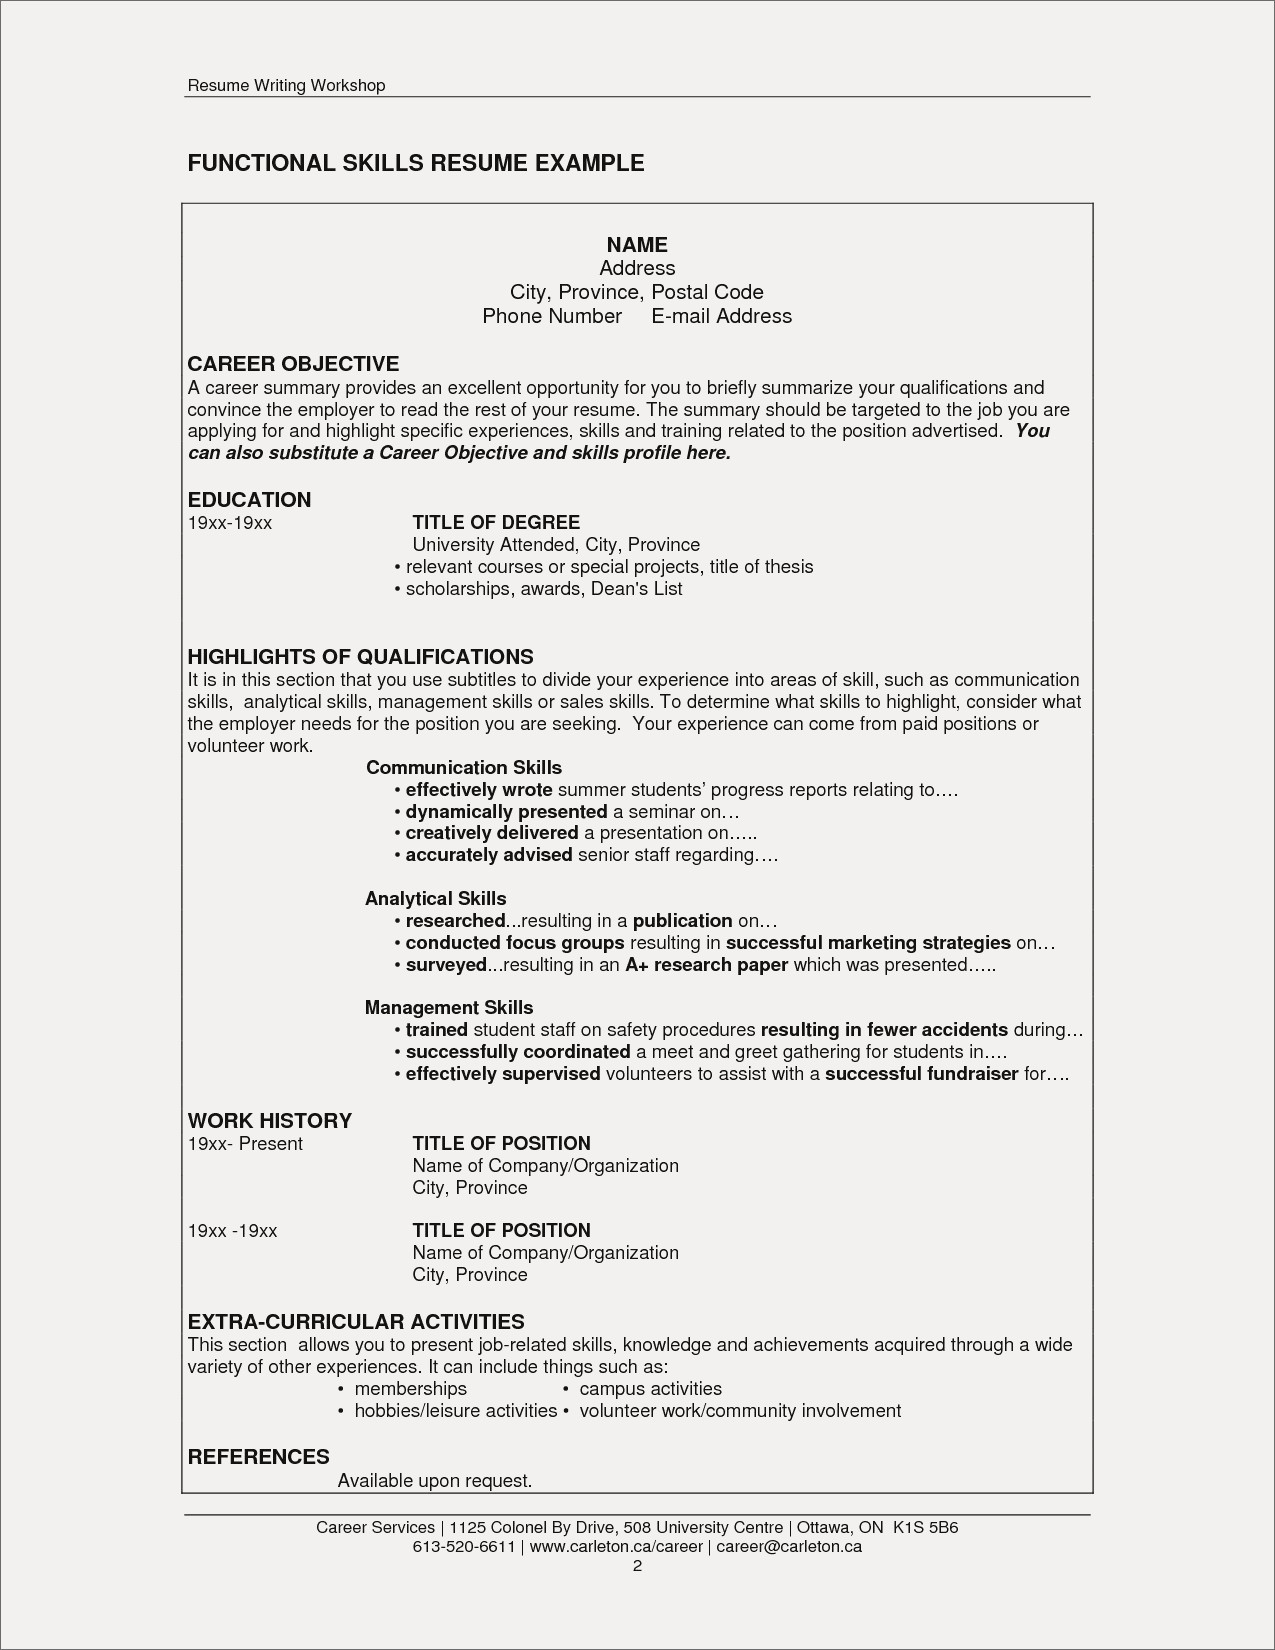 What to Put In Your Resume - Skills and Abilities to Put A Resume Refrence Resume Skills and